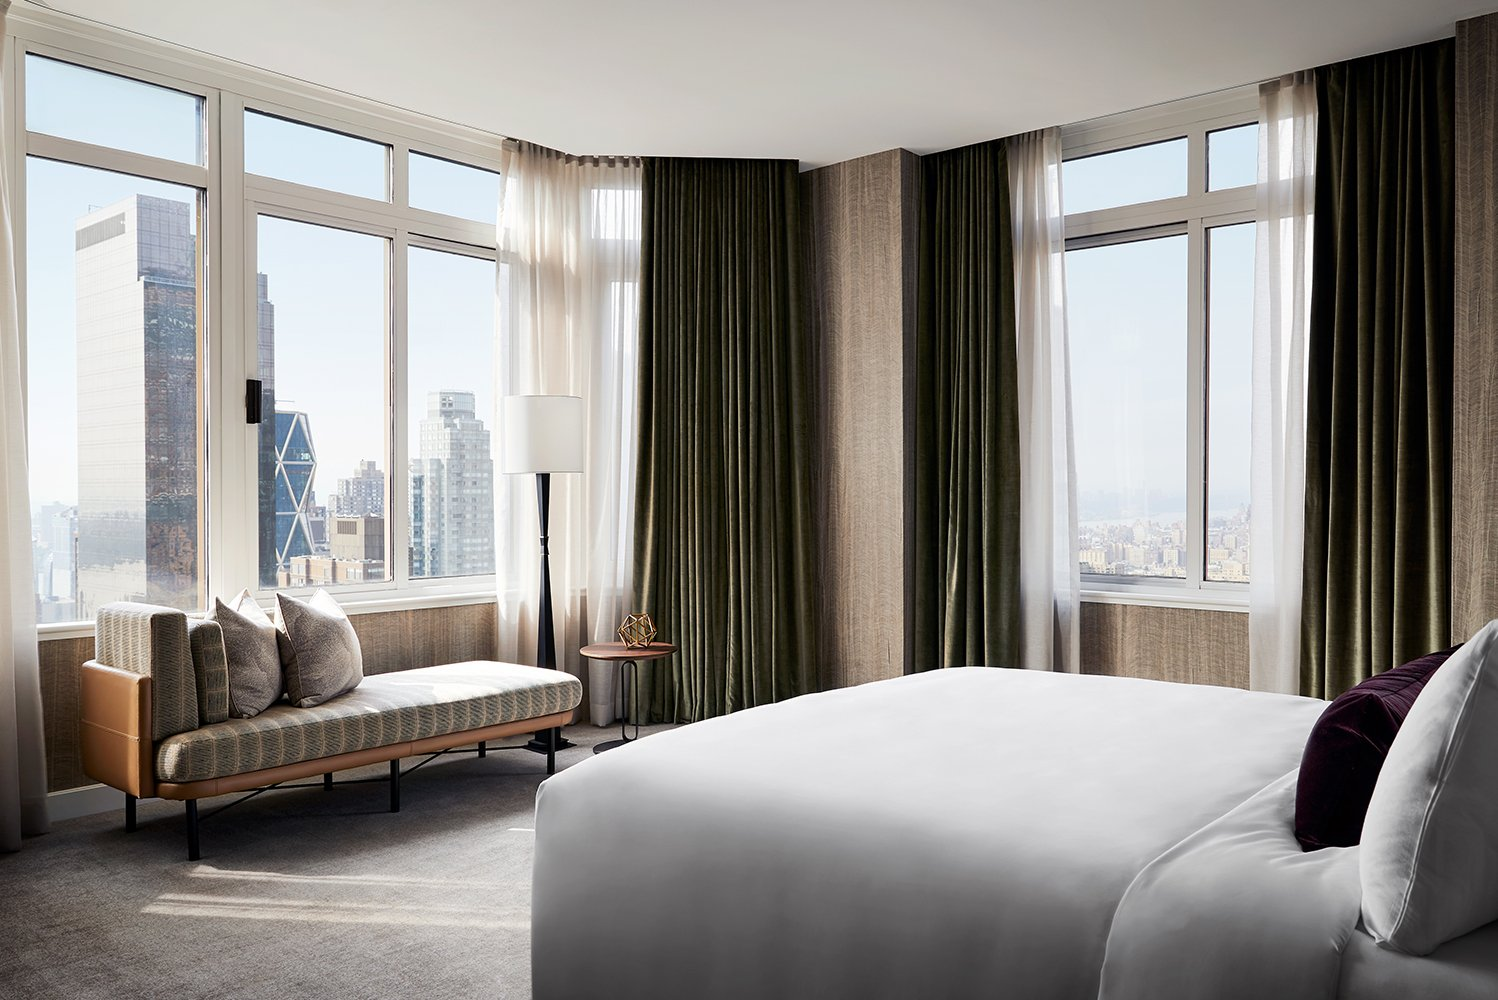 There are 13 premium suites in addition to over 500 hotel suites. Photo credit: Conrad New York Midtown/David Mitchell